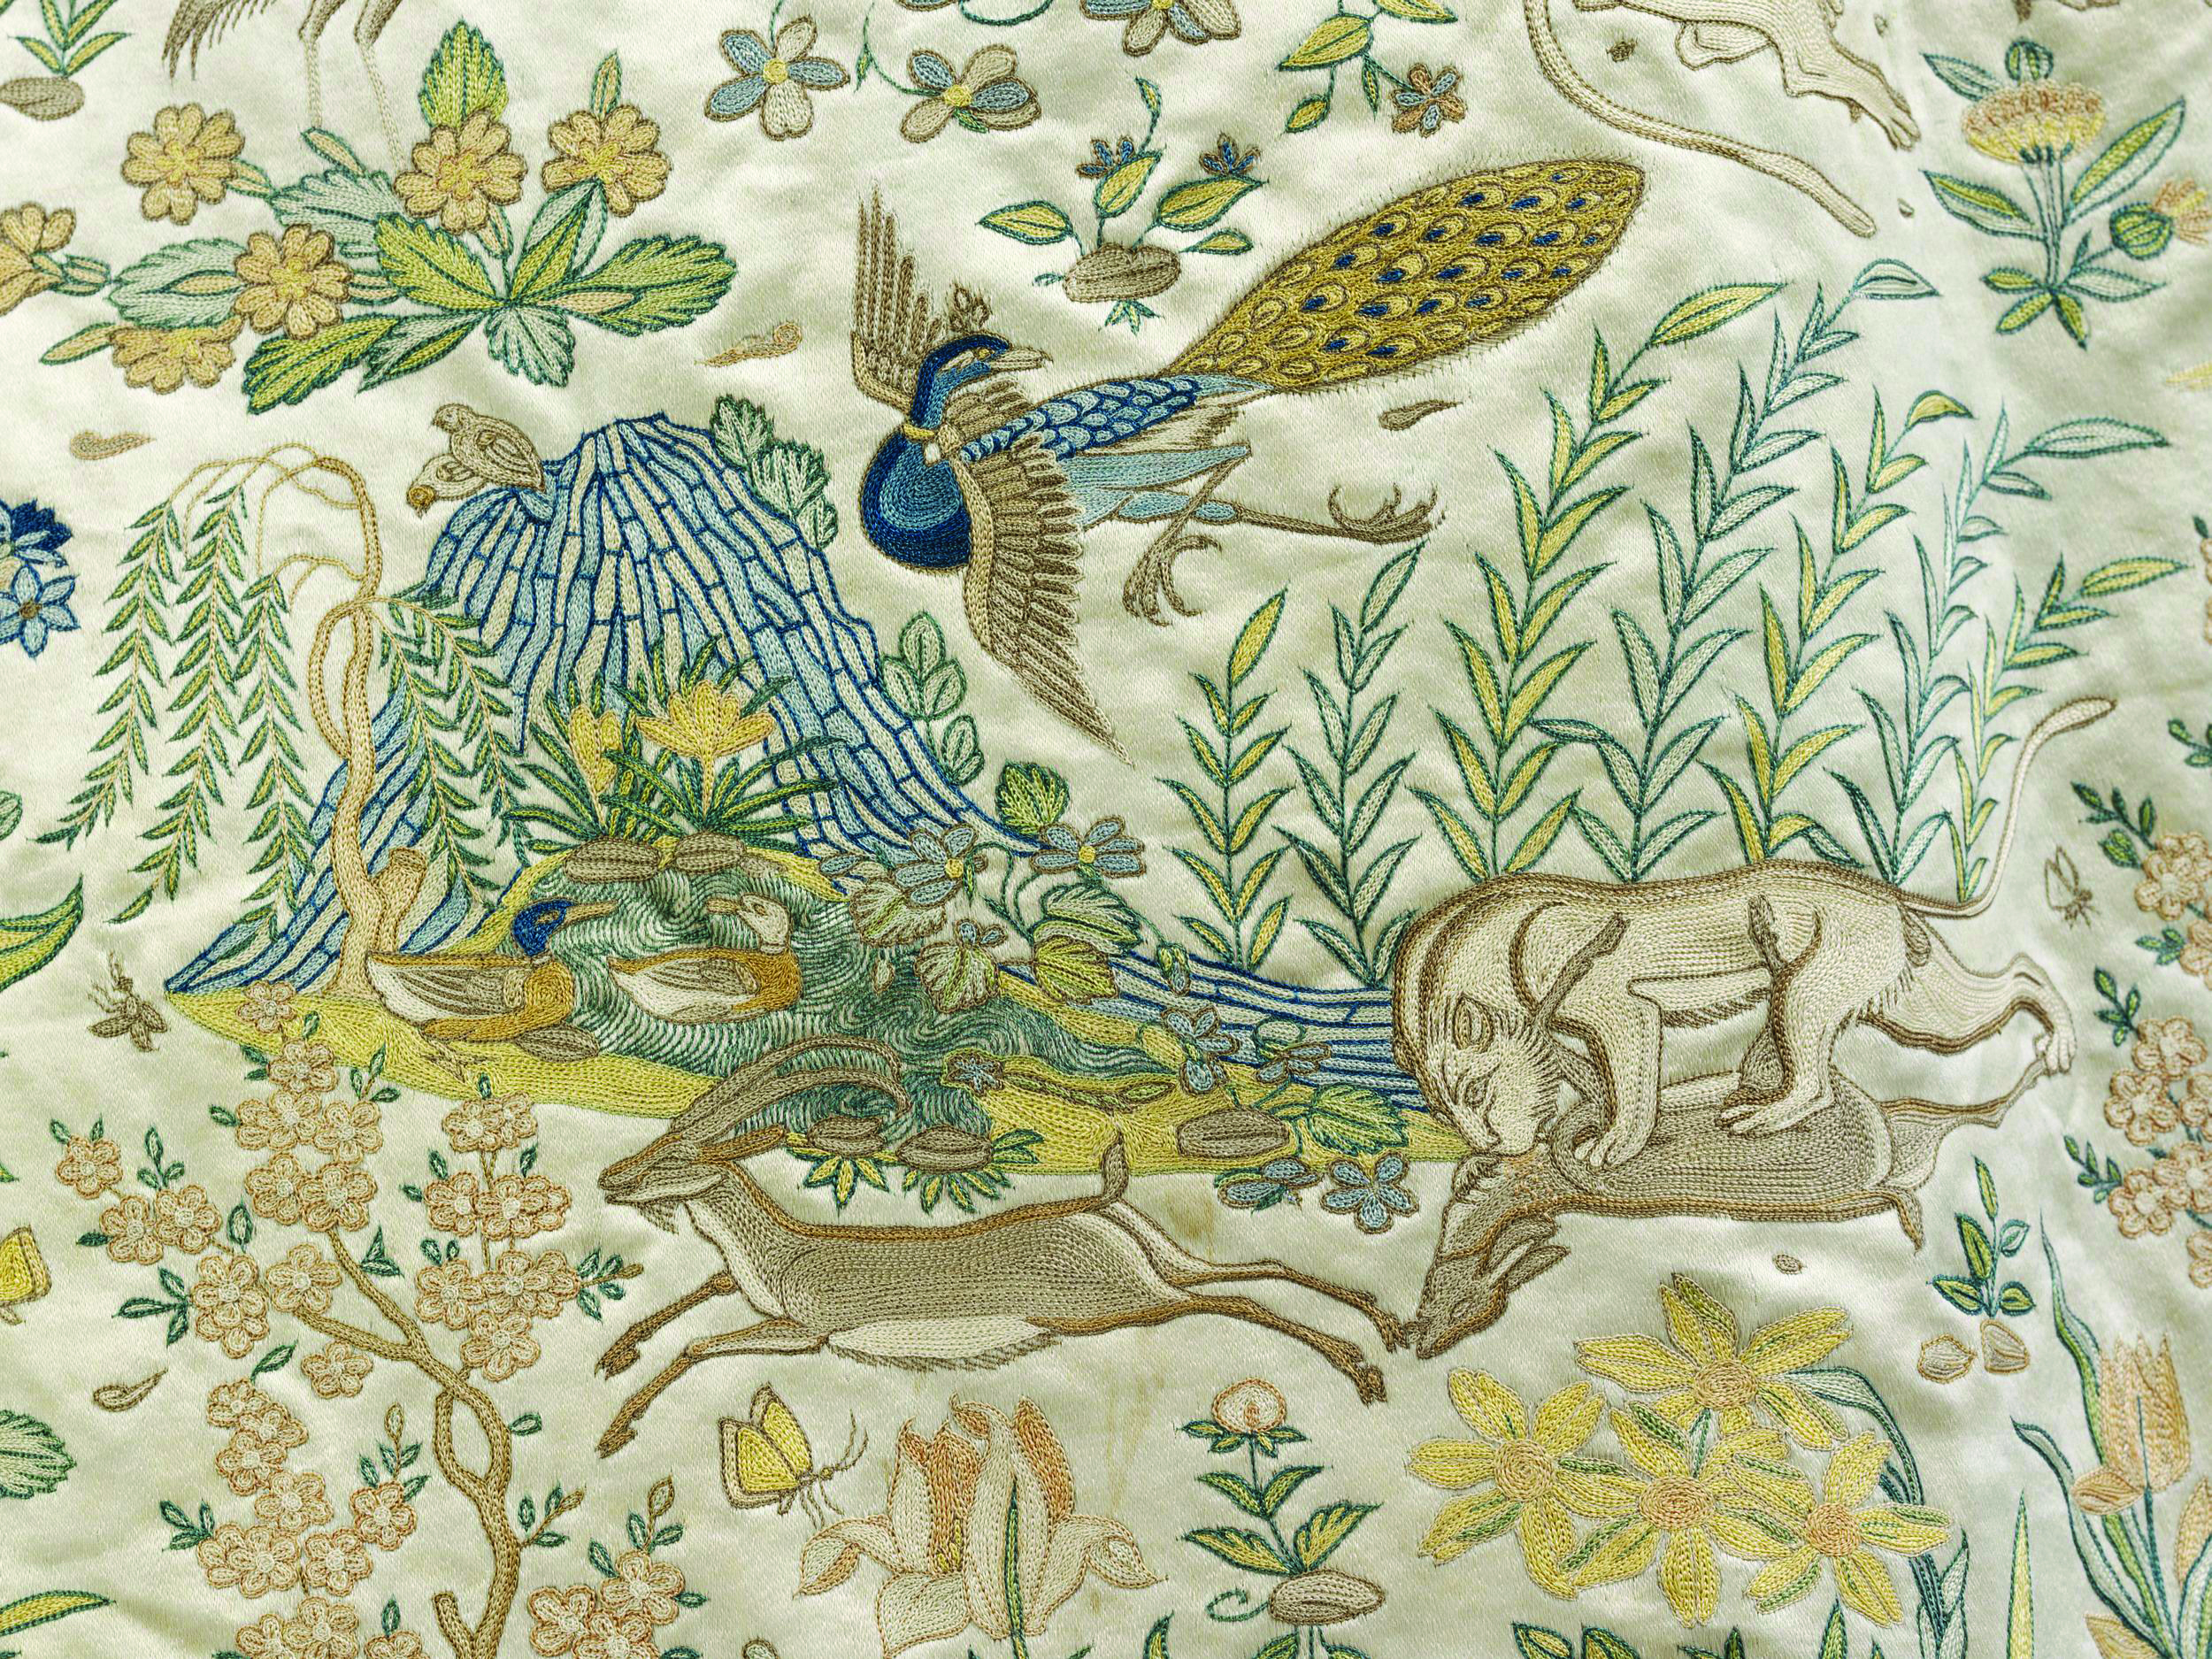 The Emperor's Humbler Clothes: Textures of Courtly Dress in